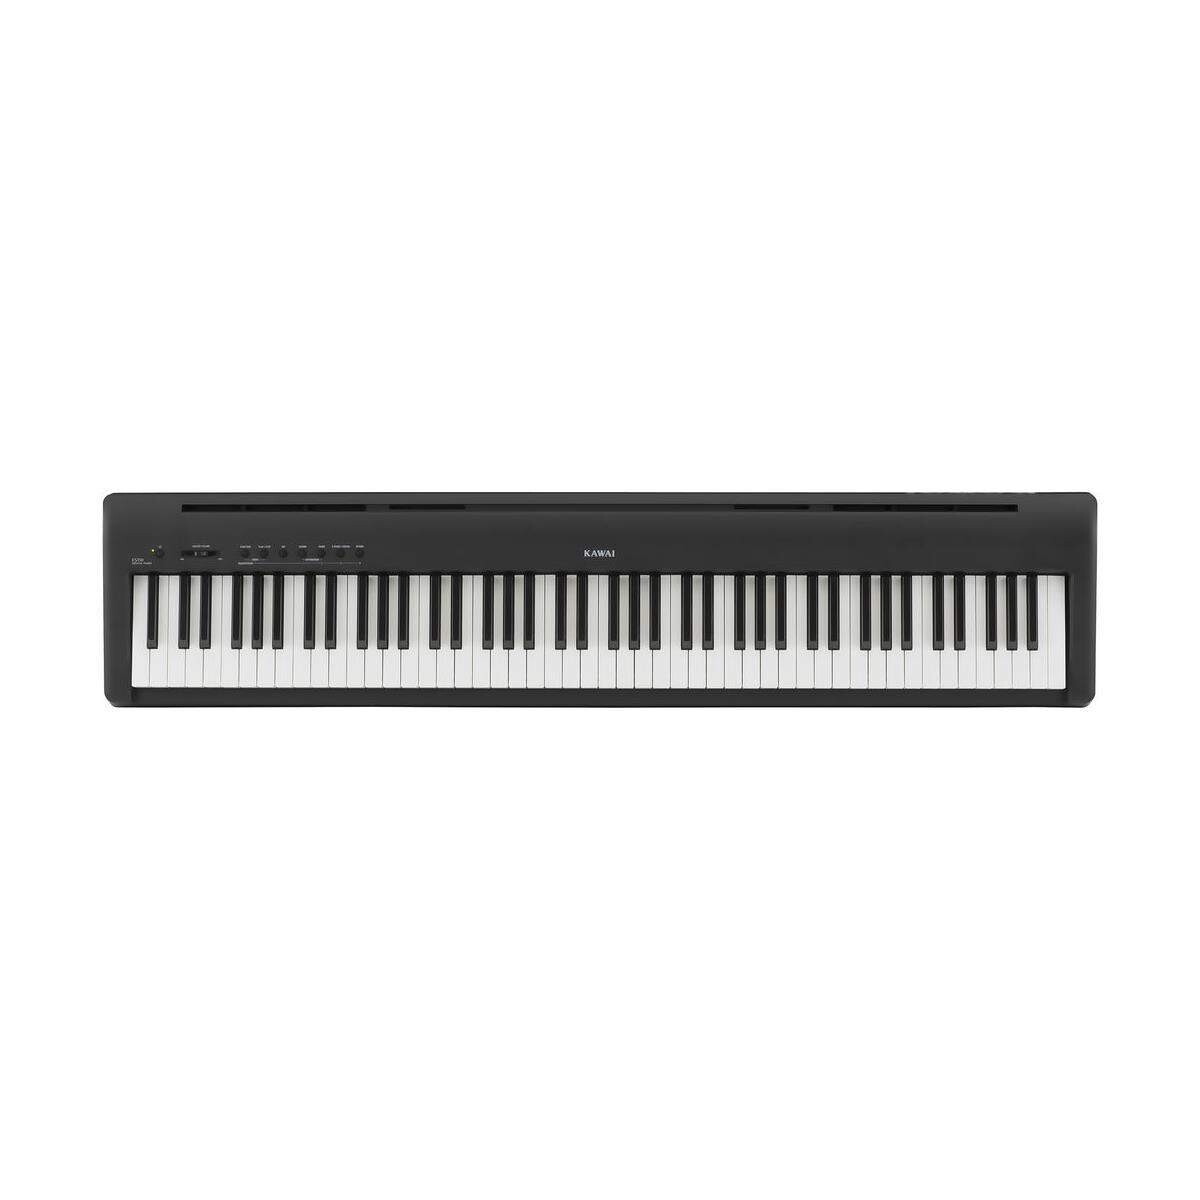 Kawai ES110 88-Key Portable Digital Piano